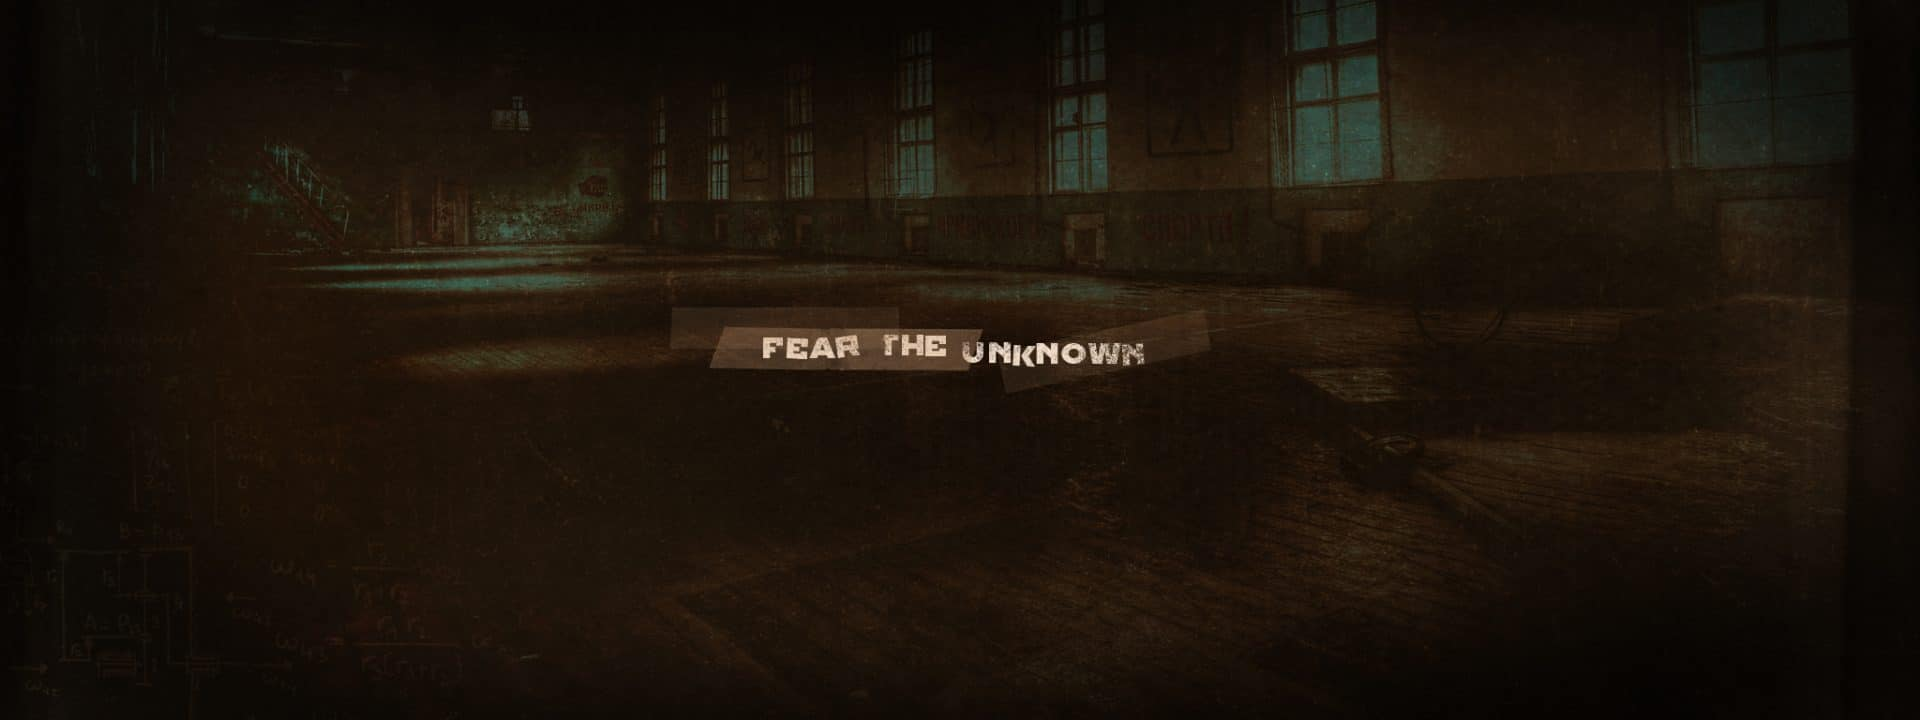 Titre « fear the unknown » sur fond d'école désaffectée